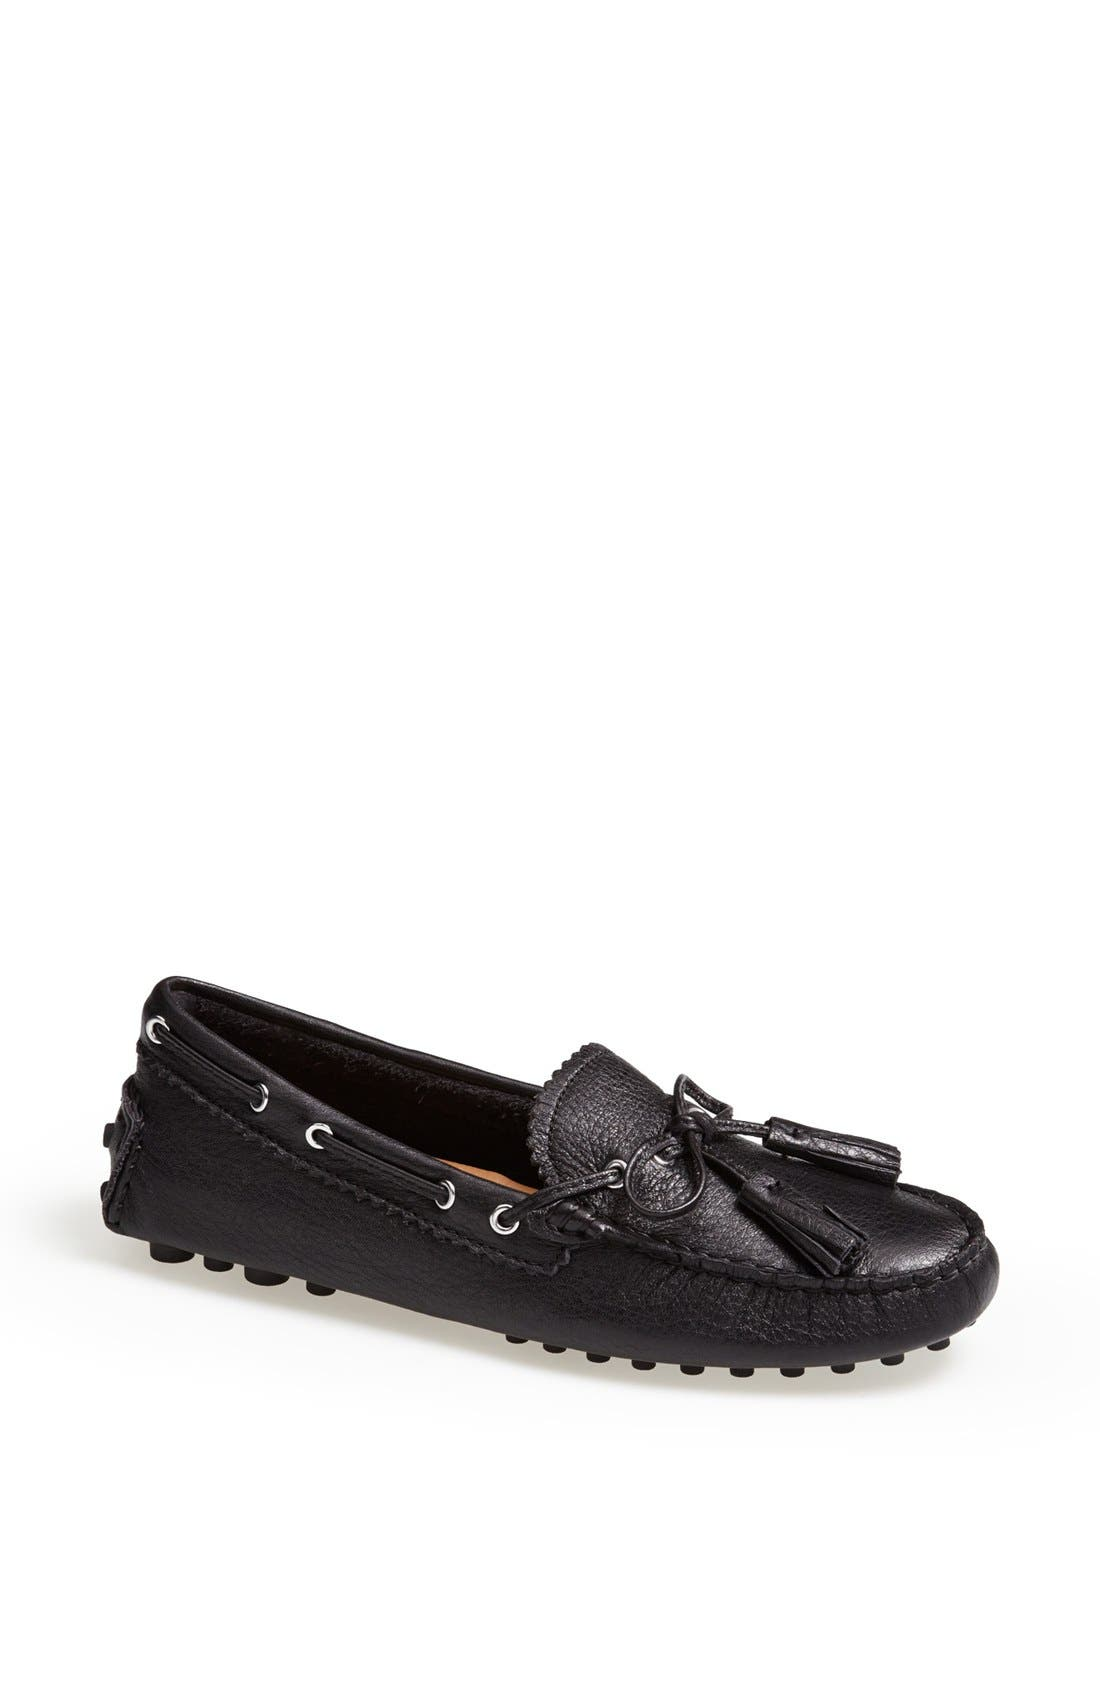 'Nadia' Leather Driving Loafer,                             Main thumbnail 1, color,                             001